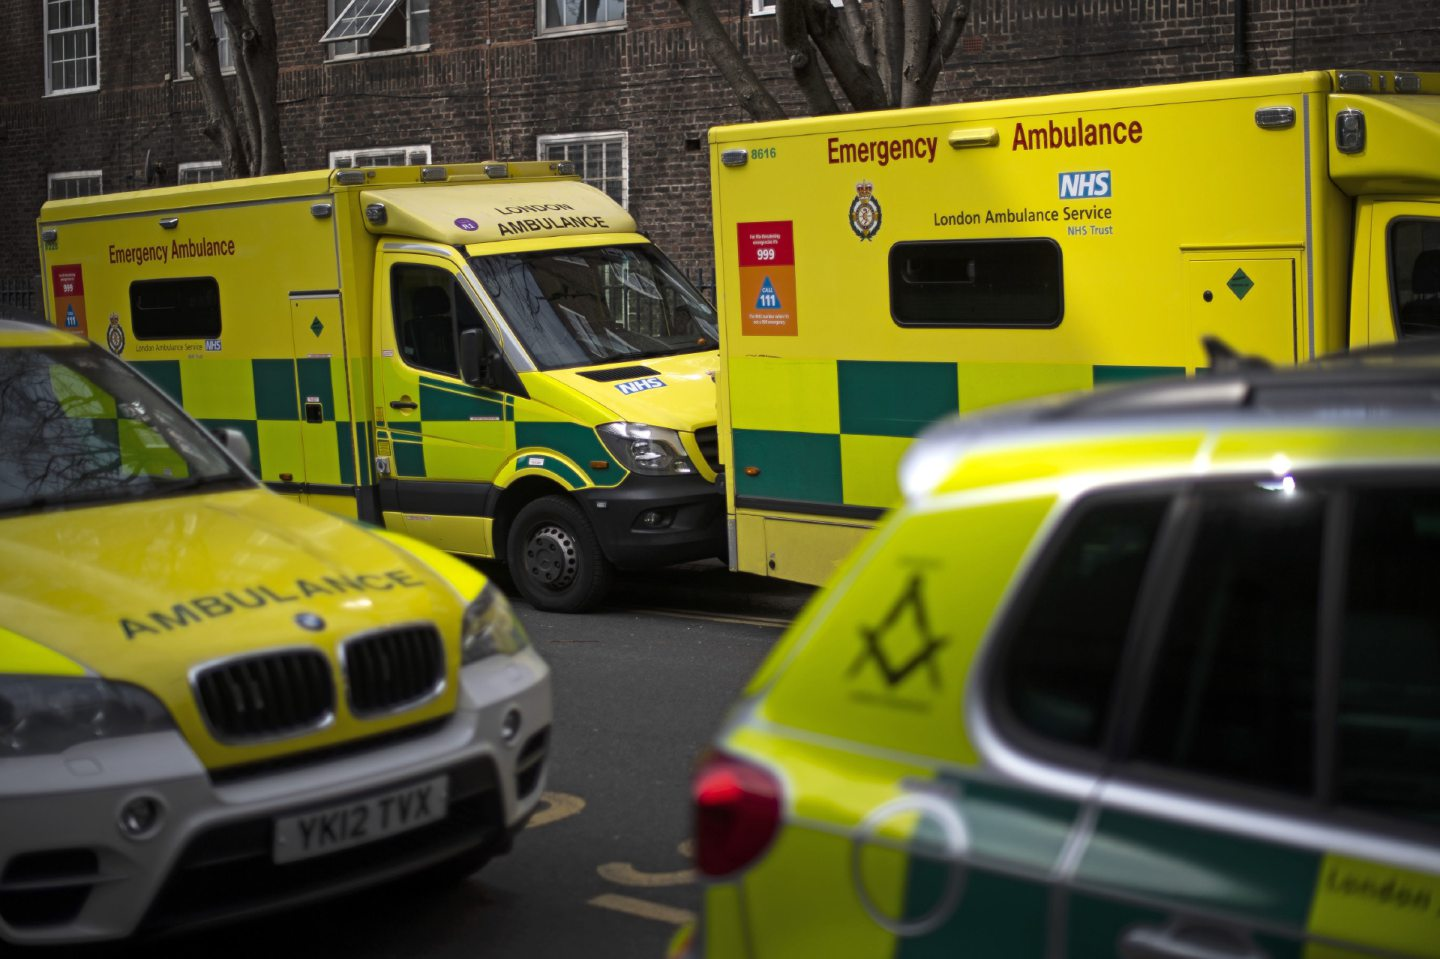 London ambulances line a street in Westminster, London as the UK continues in lockdown to help curb the spread of the coronavirus.